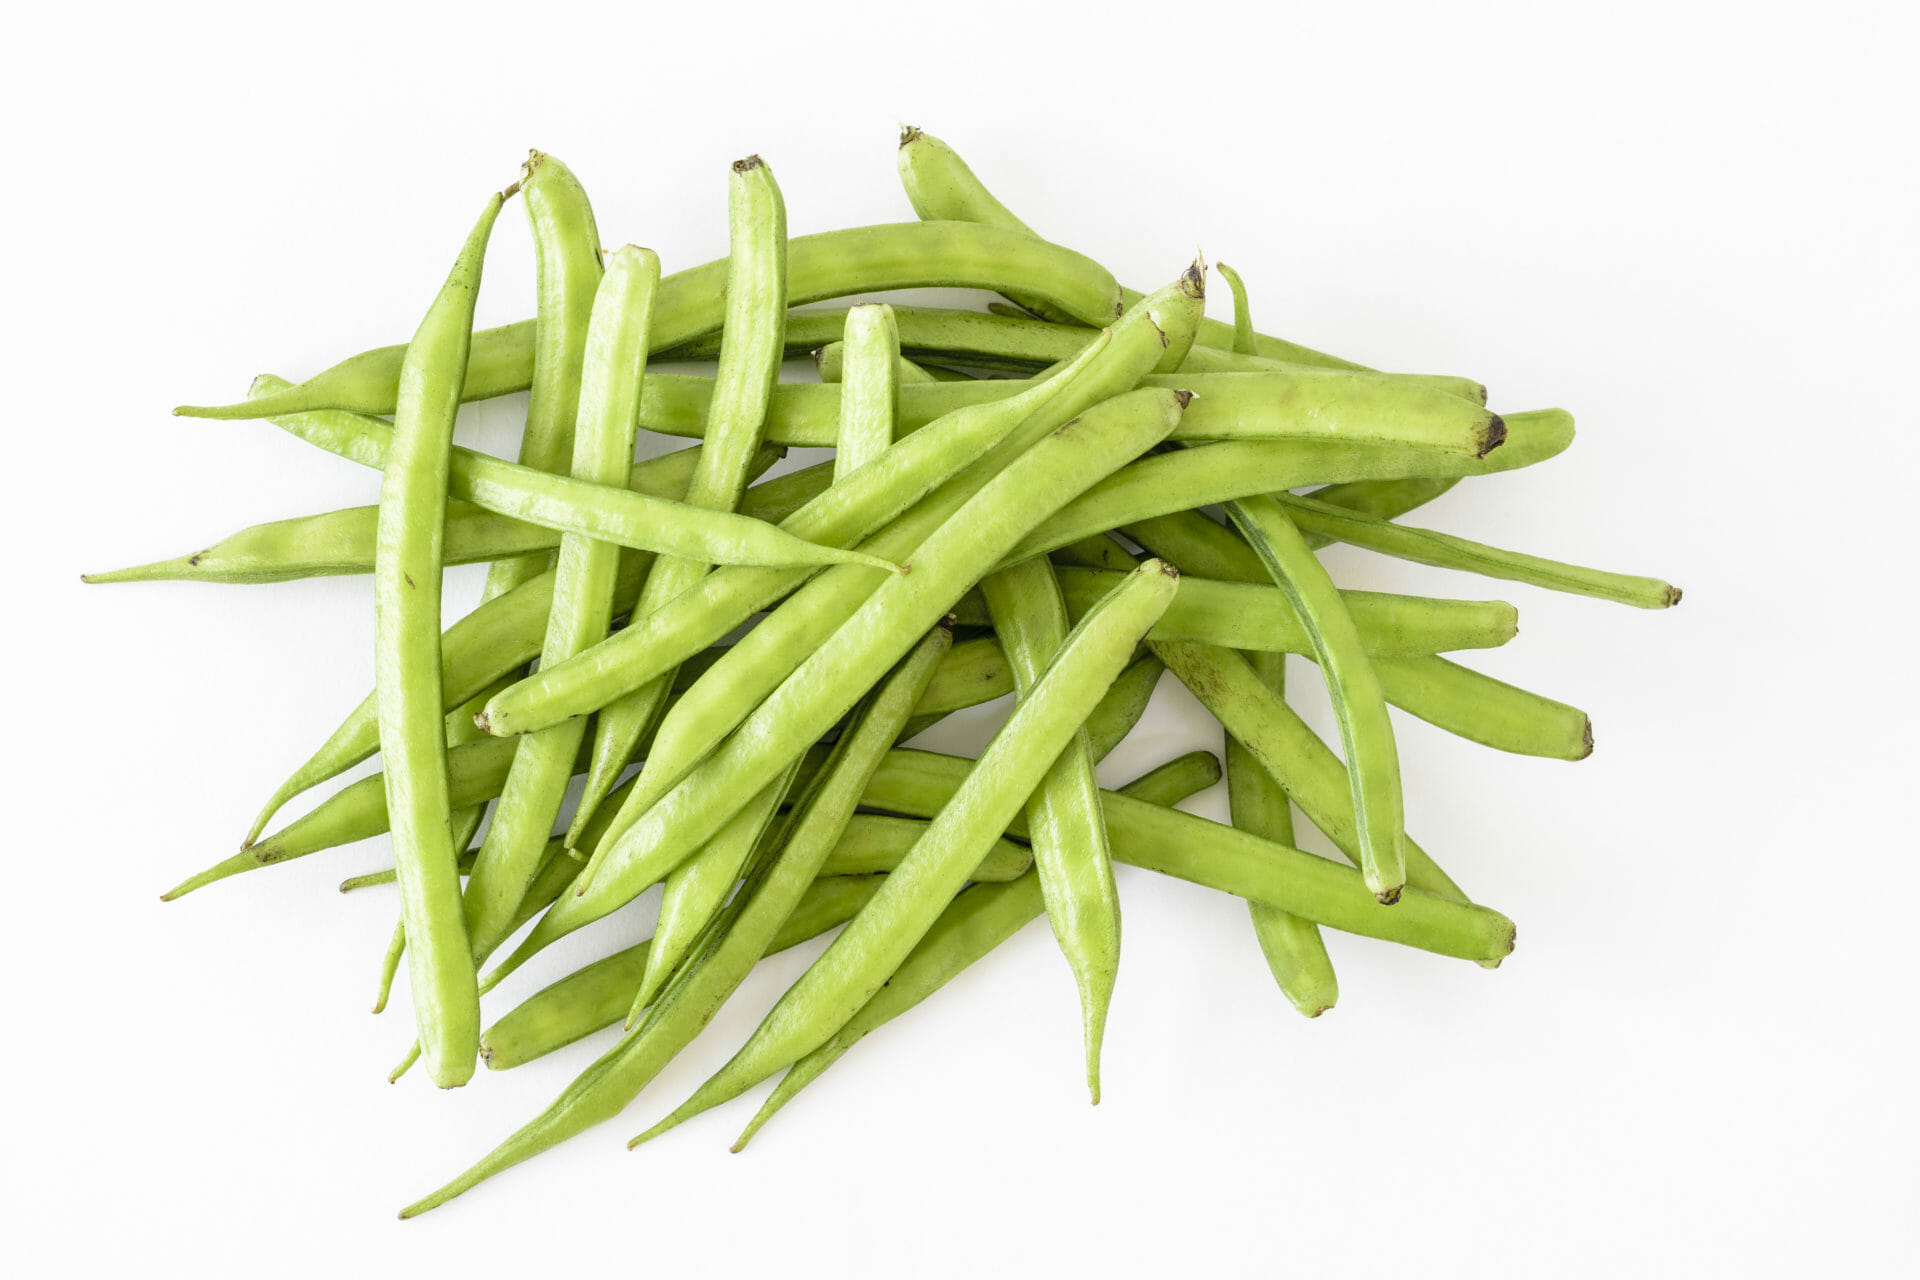 Organic Cluster beans or guar (Indian vegetable) and source of guar gum